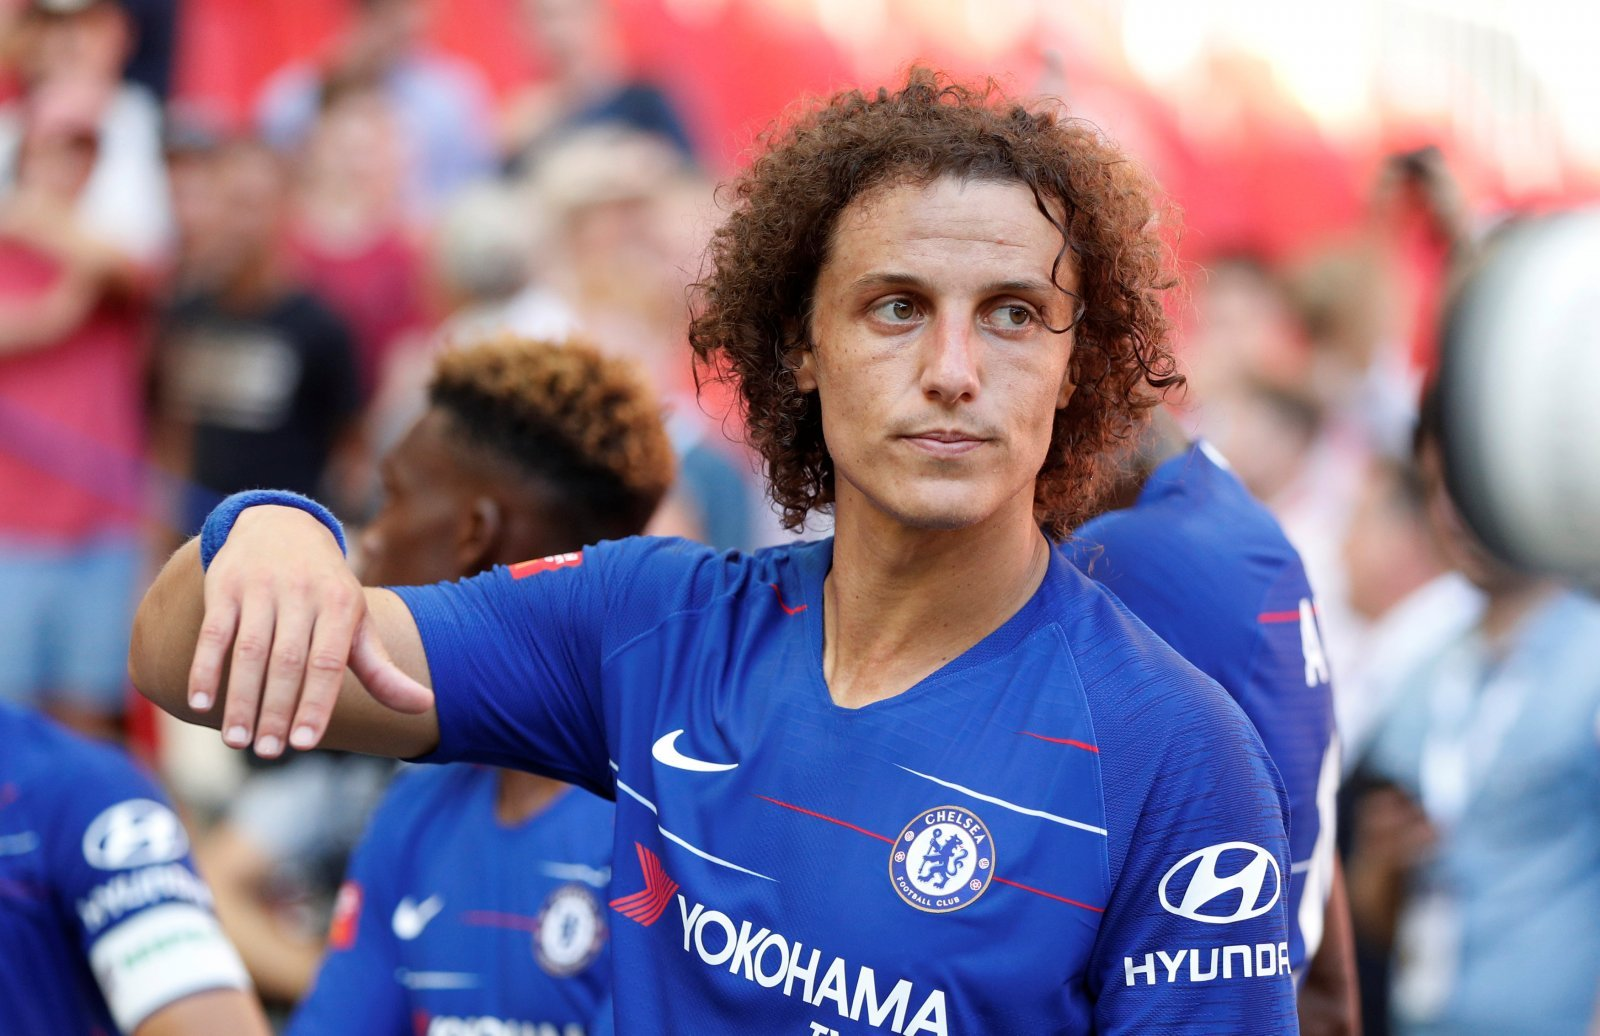 Chelsea fans have got to hope the David Luiz rumours are false